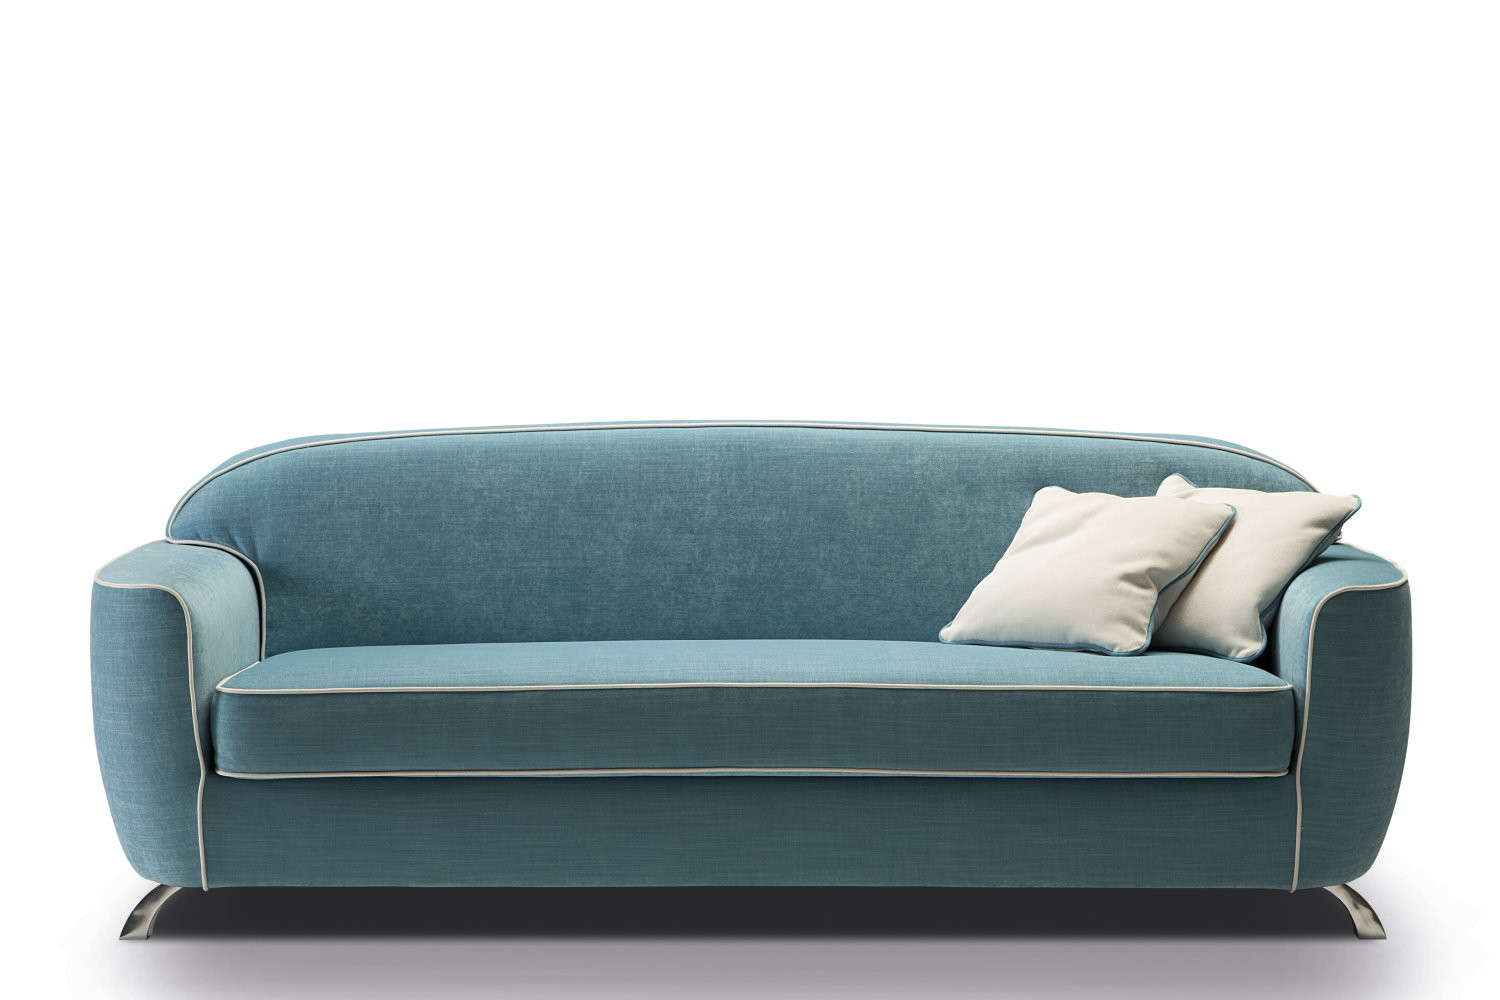 9 Seater Car >> Charles vintage sofa with a 50s style